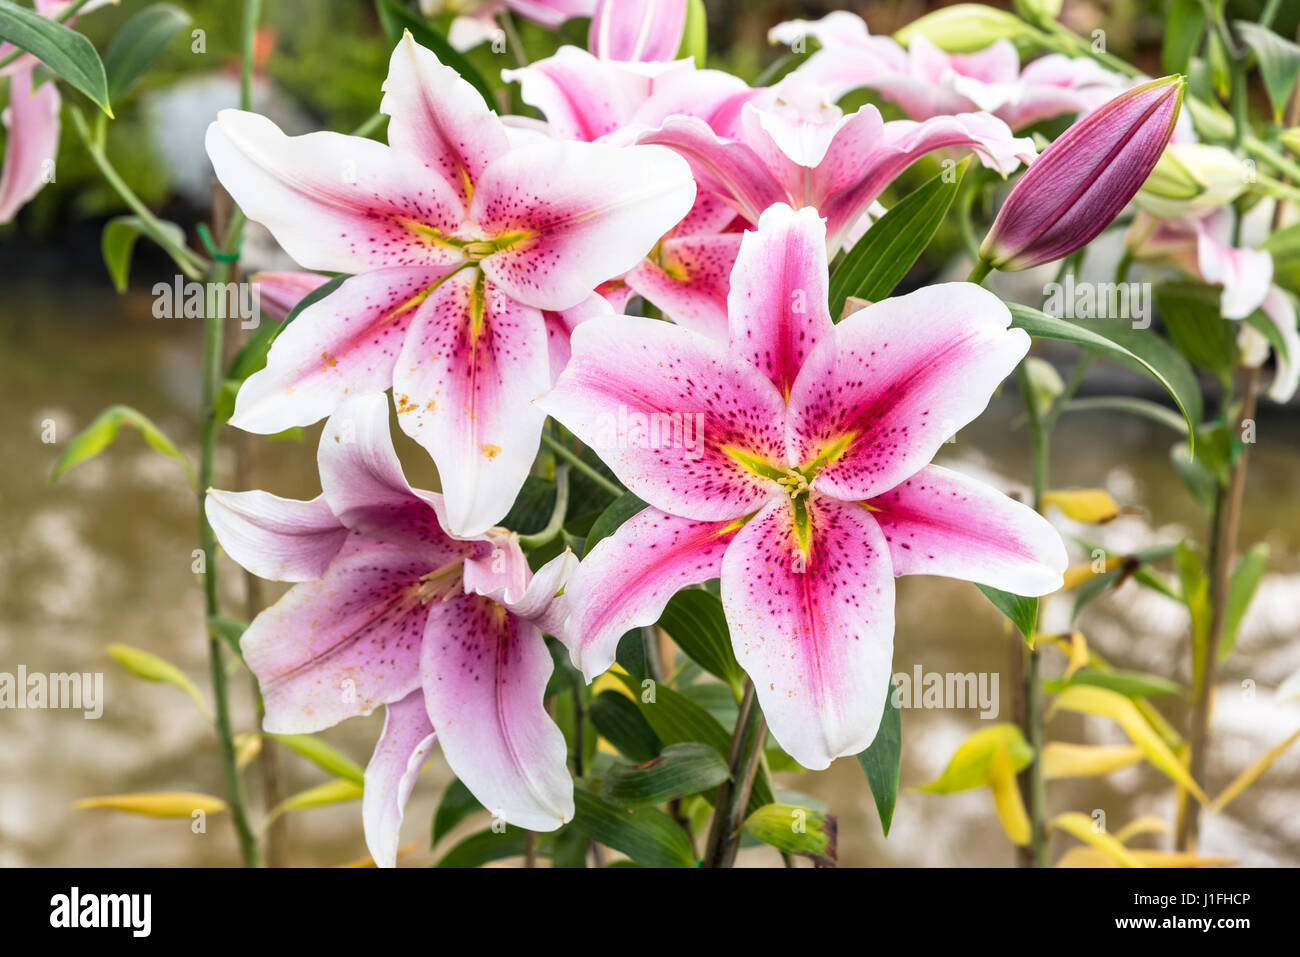 Garden flowers names - Beautiful Pink Lily In Garden Zephyranthes Flower Common Names For Species In This Genus